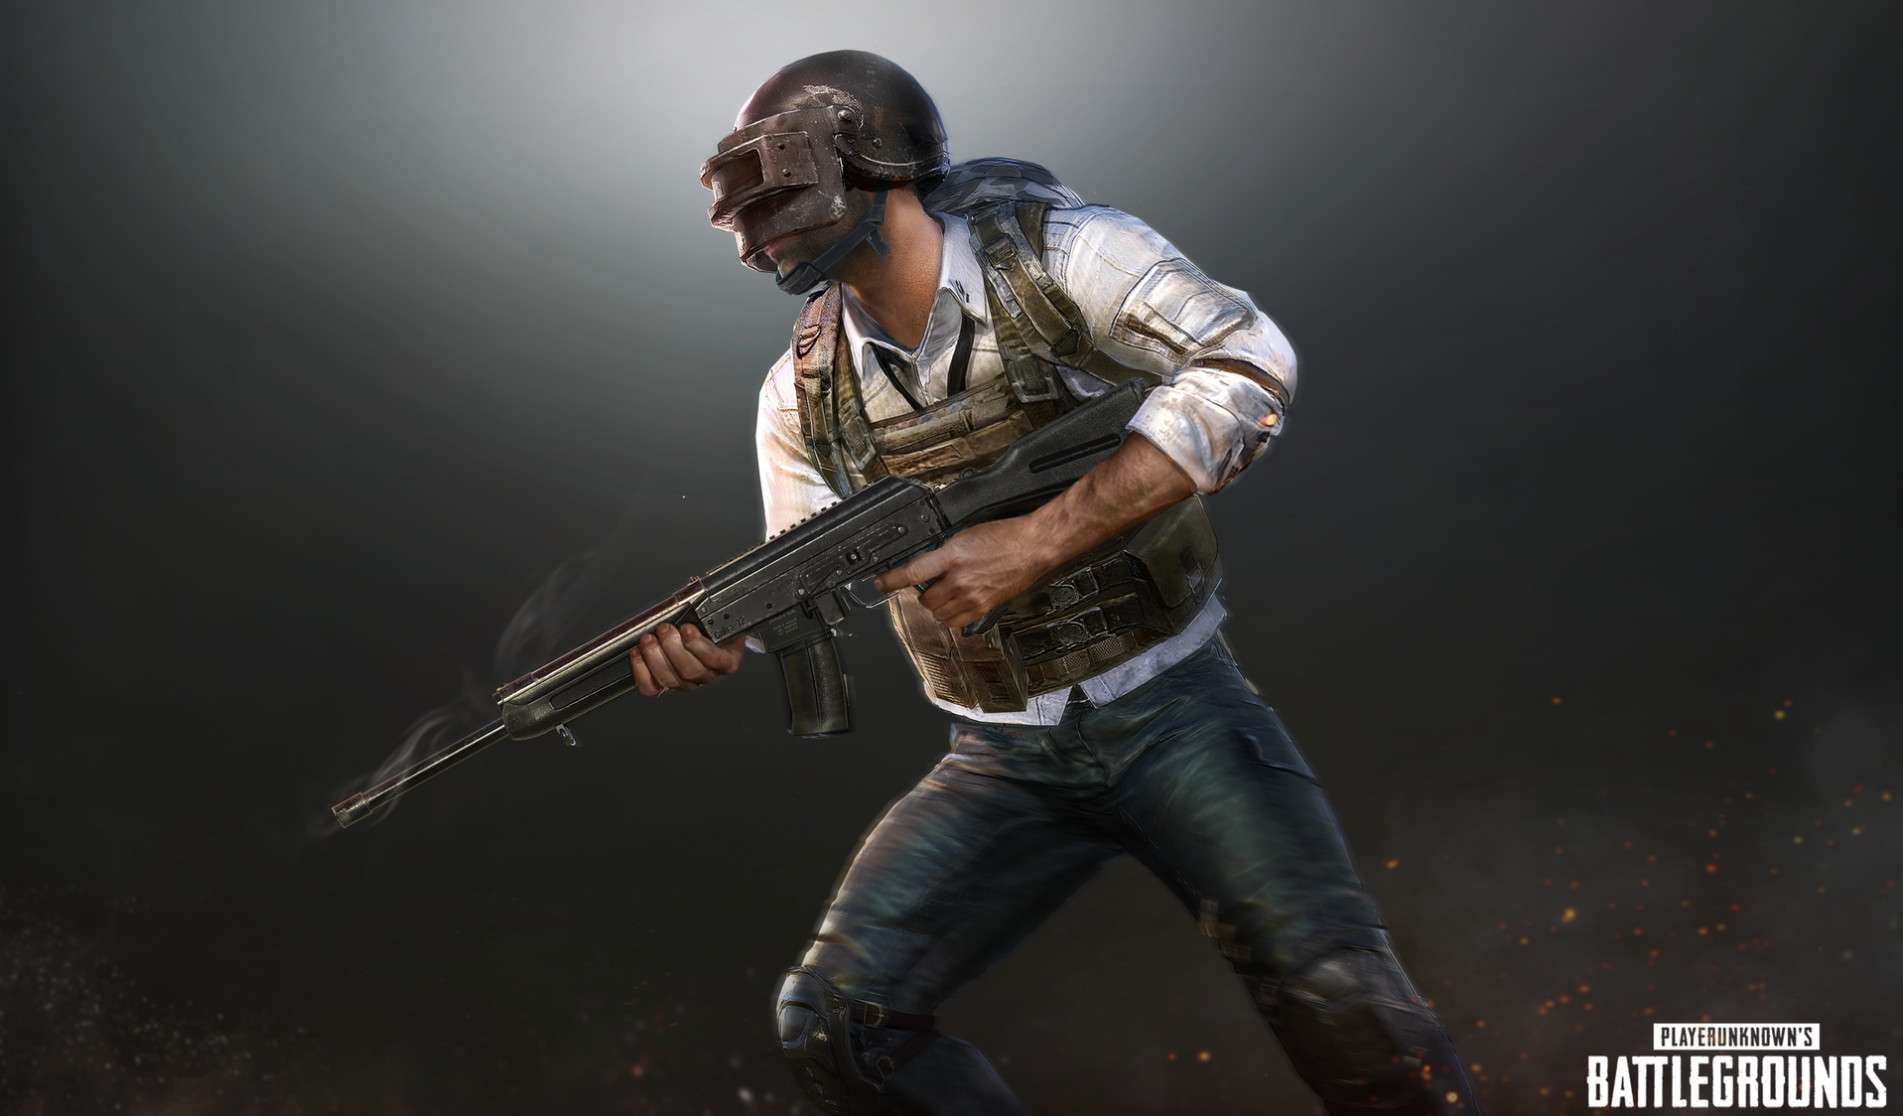 1920x1080 Pubg Helmet Guy Working Laptop Full Hd 1080p Hd: PUBG Wallpaper 17